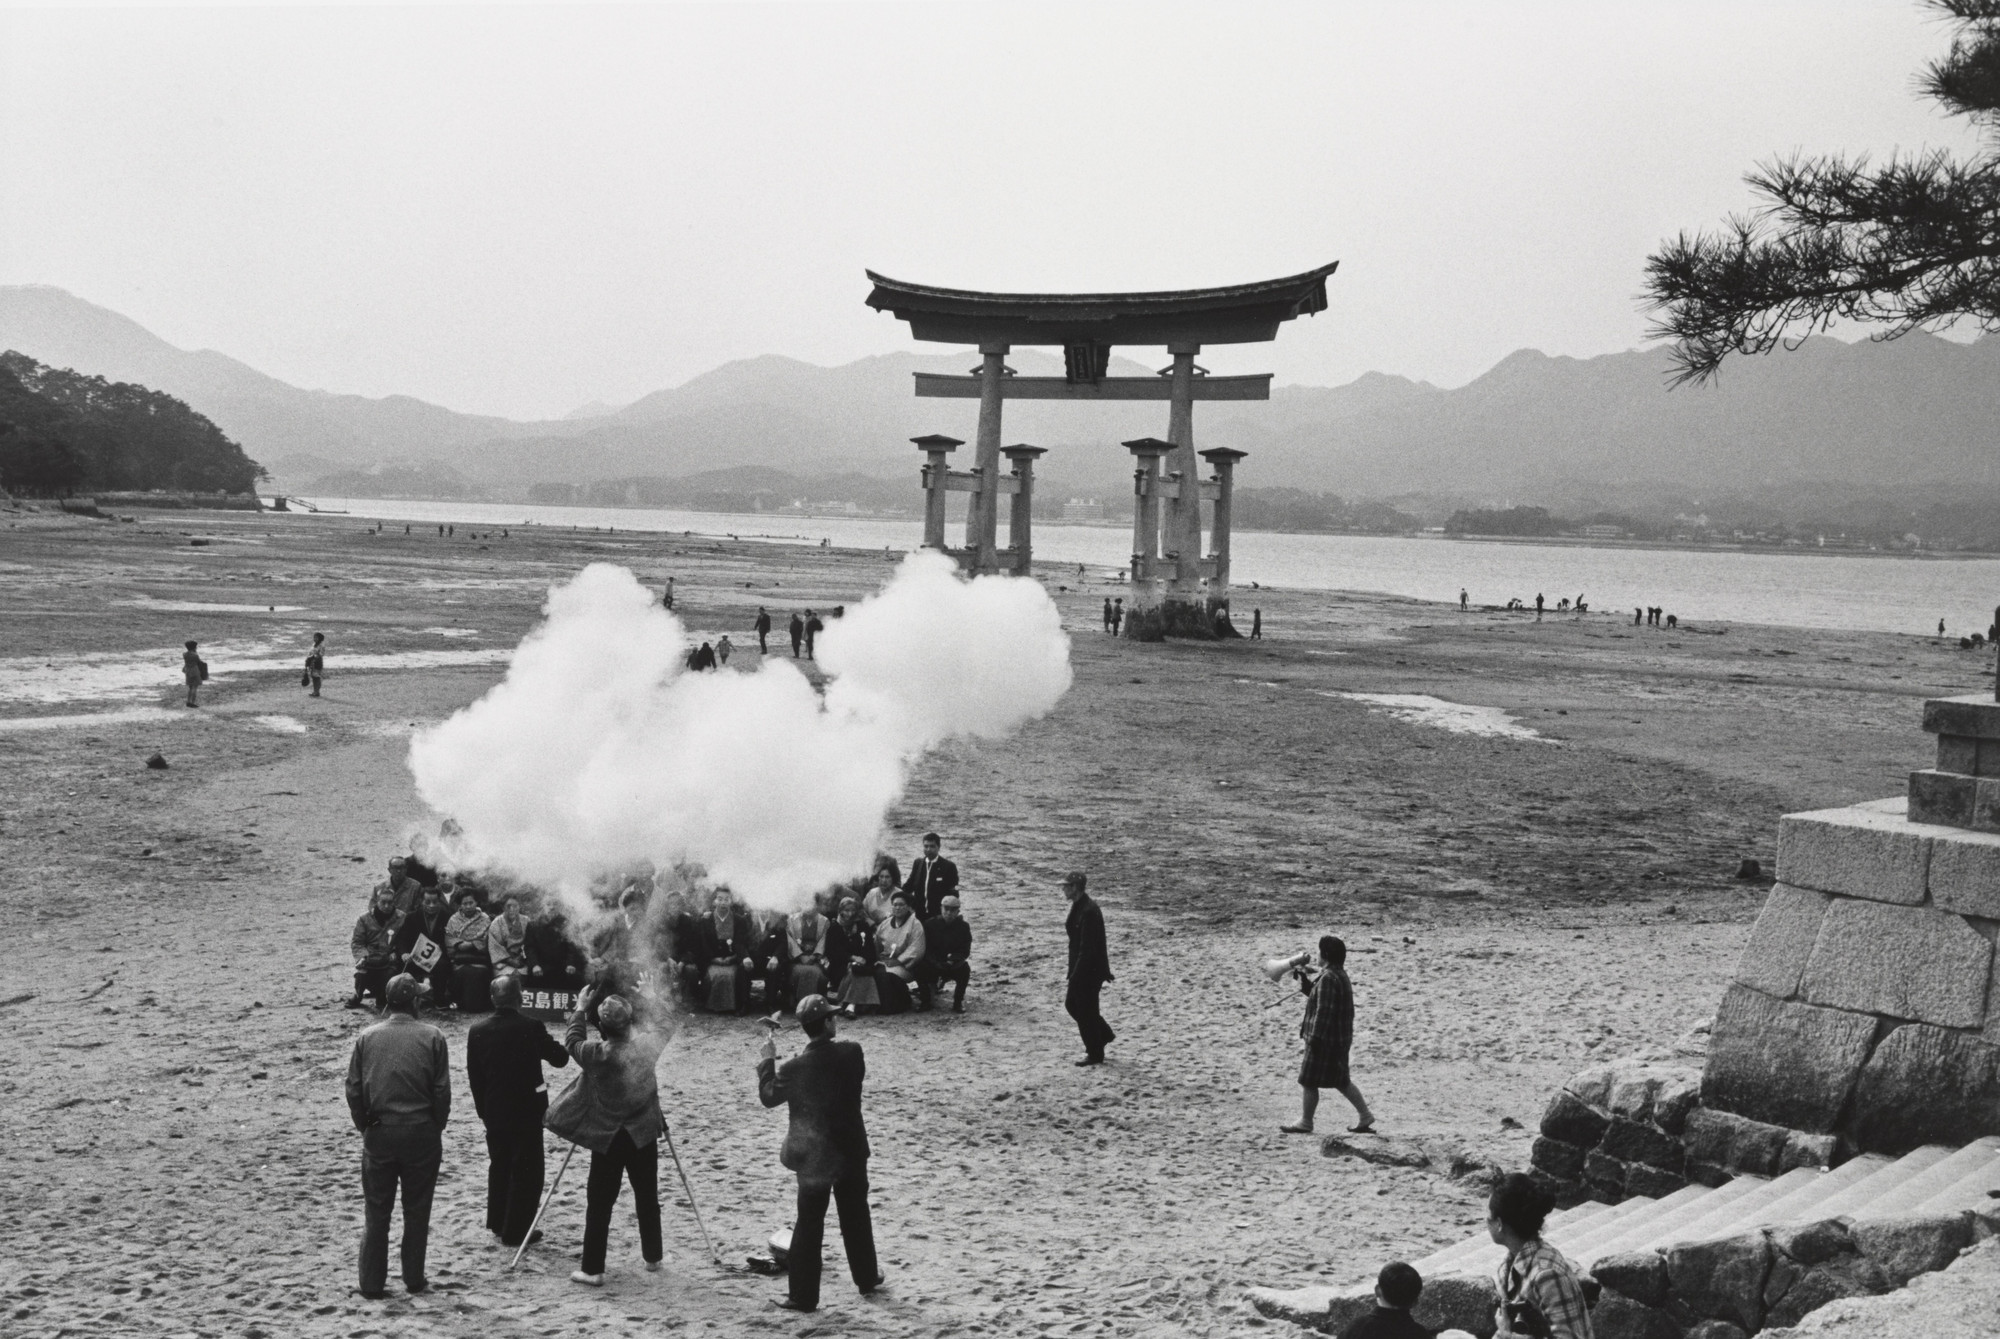 Ryoji Akiyama. Tourists Being Photographed in Front of a Tori, Miyajima. 1970